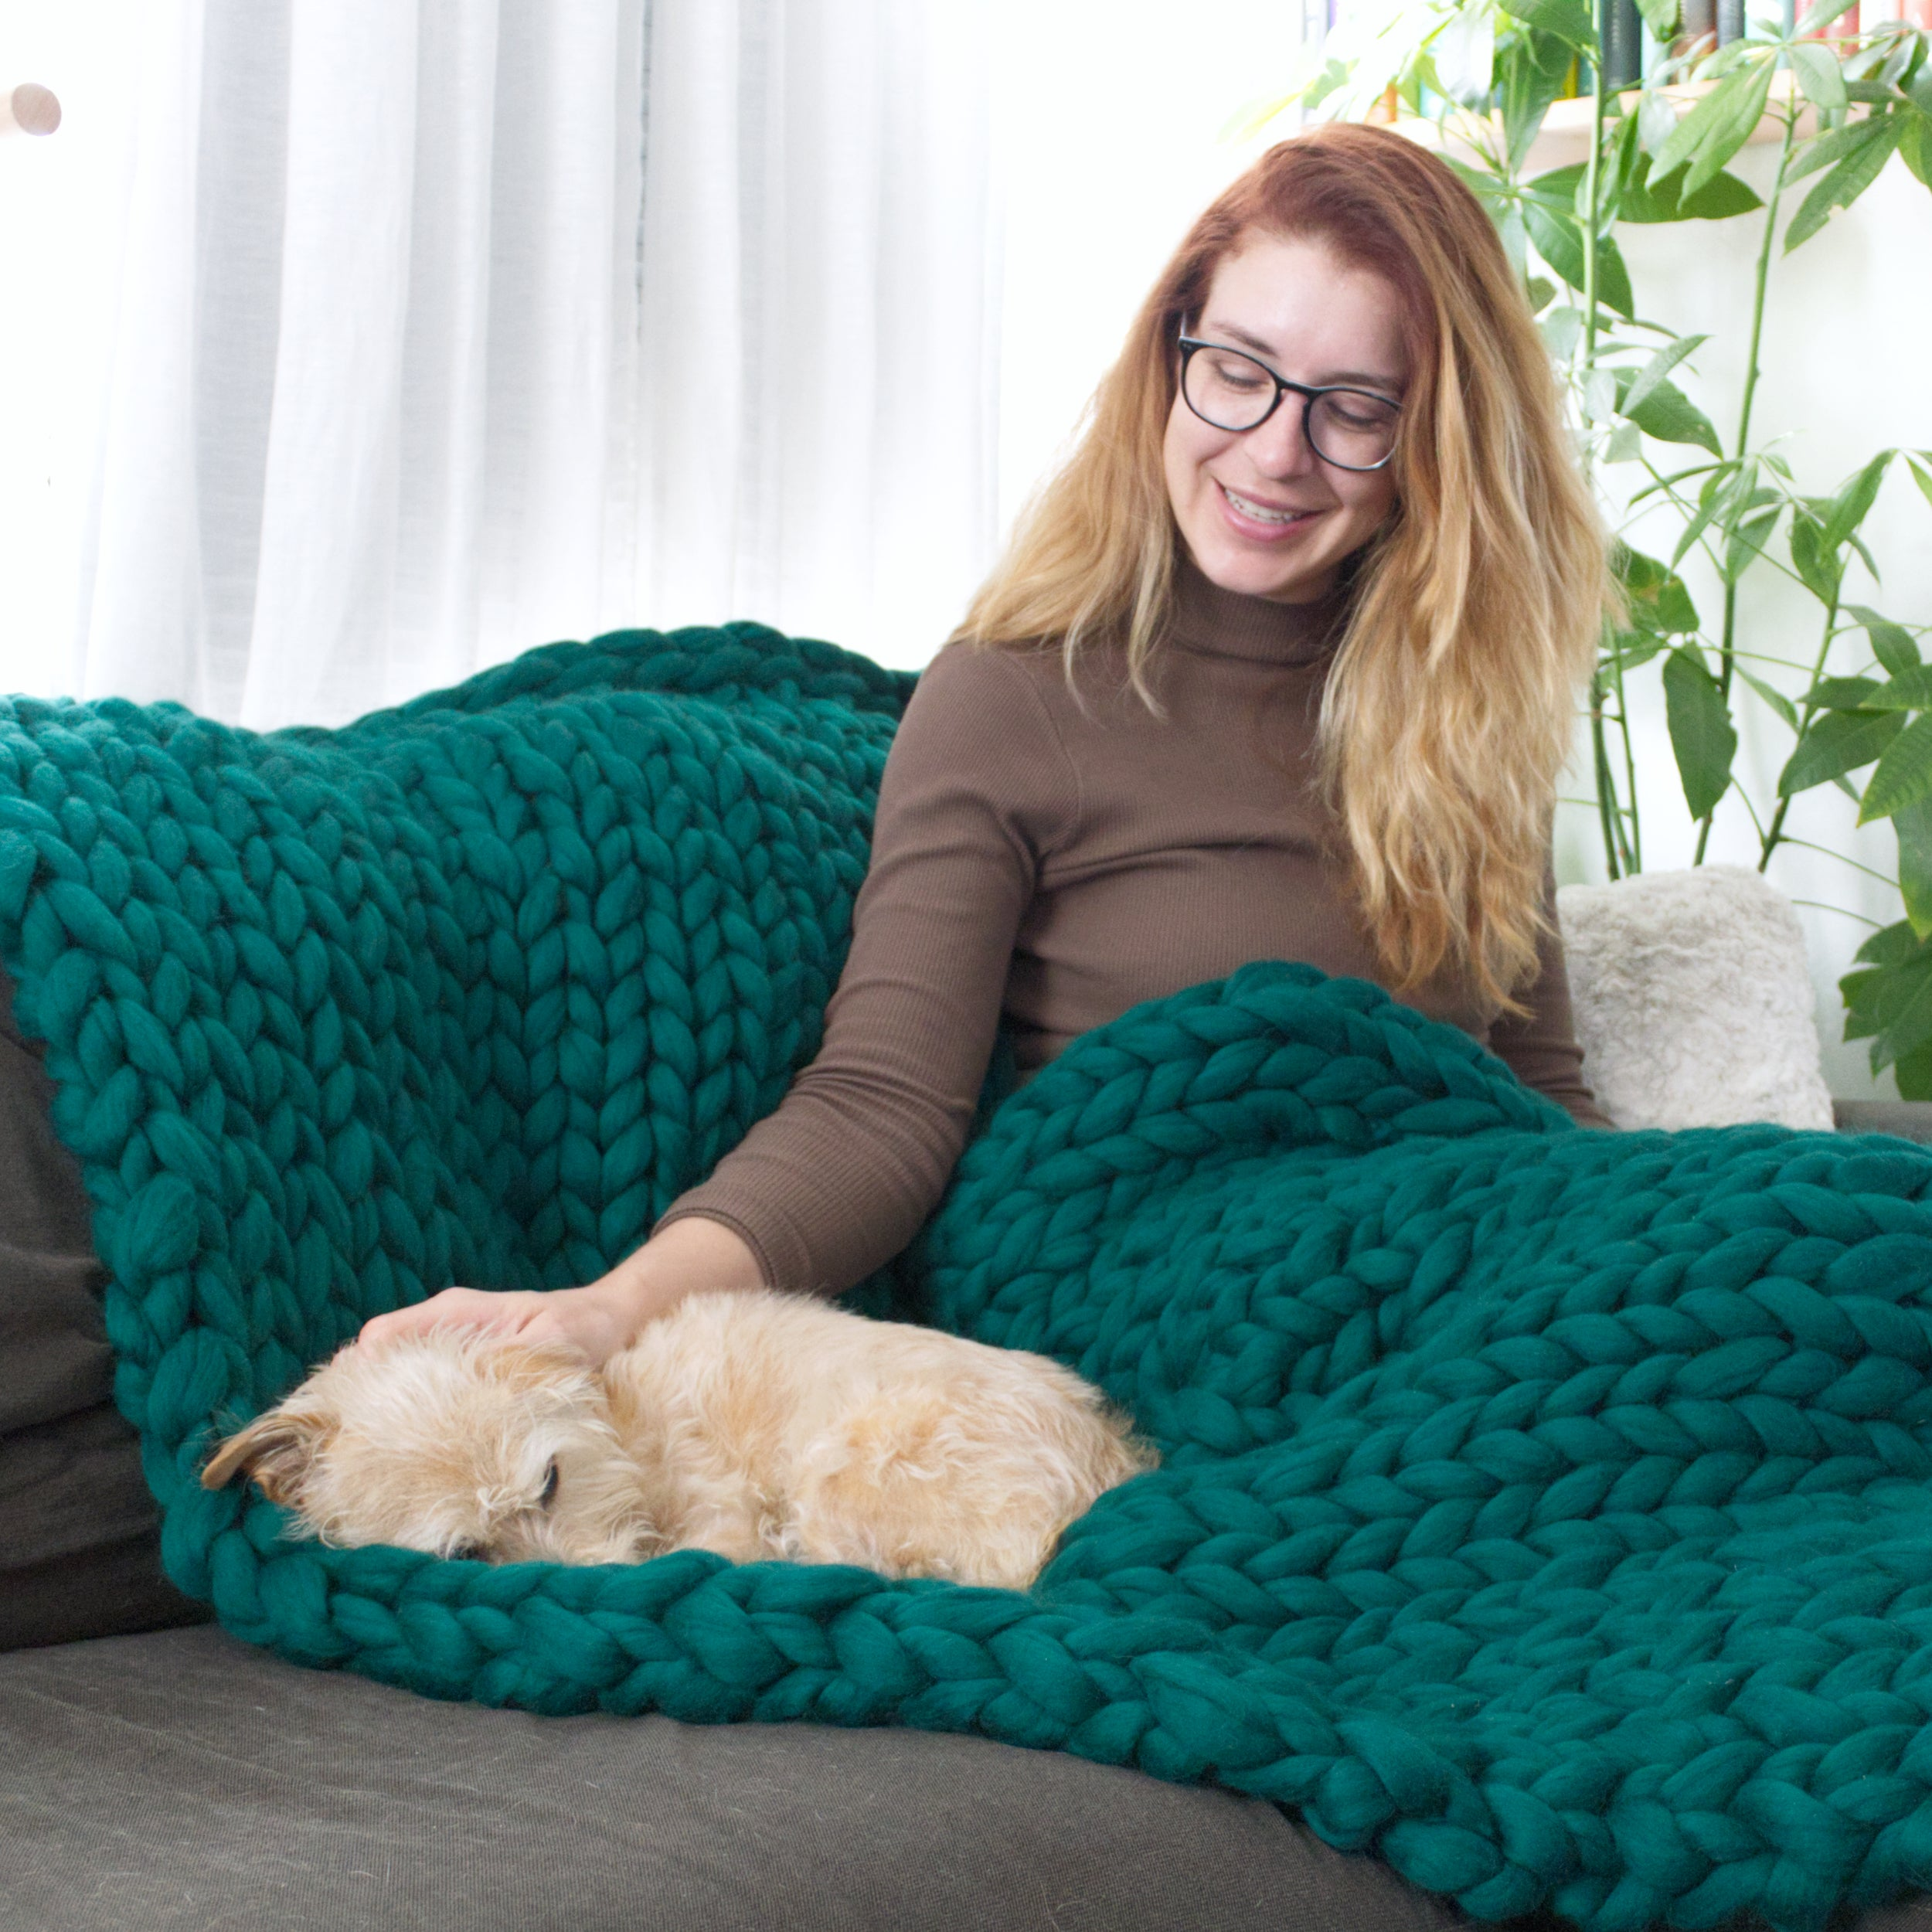 A few tips on how to make a DIY chunky knit blanket